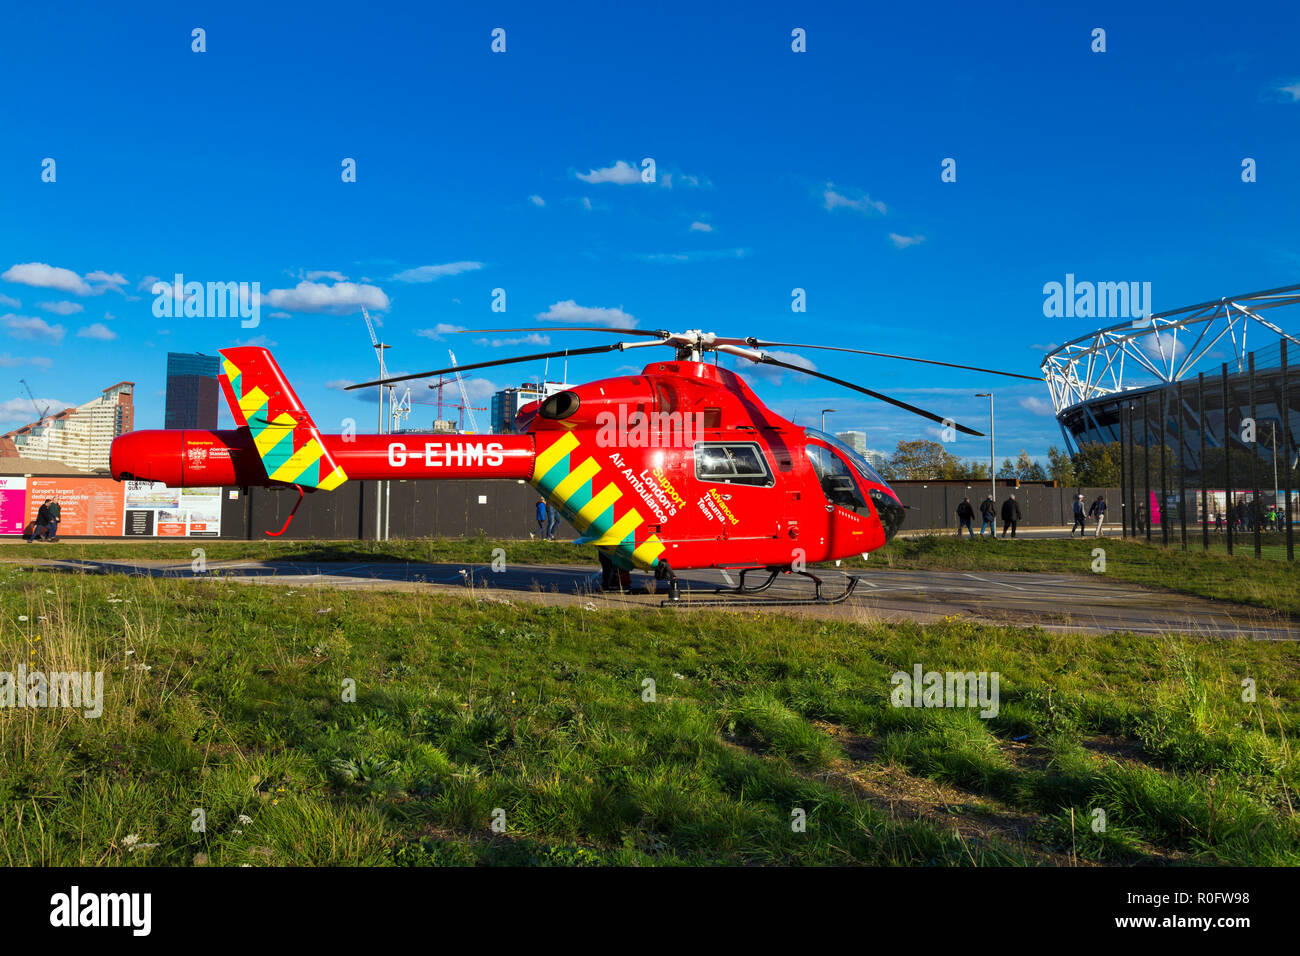 London Air Ambulance red helicopter stationed by the stadium in the Queen Elizabeth Olympic Park, London, UK - Stock Image